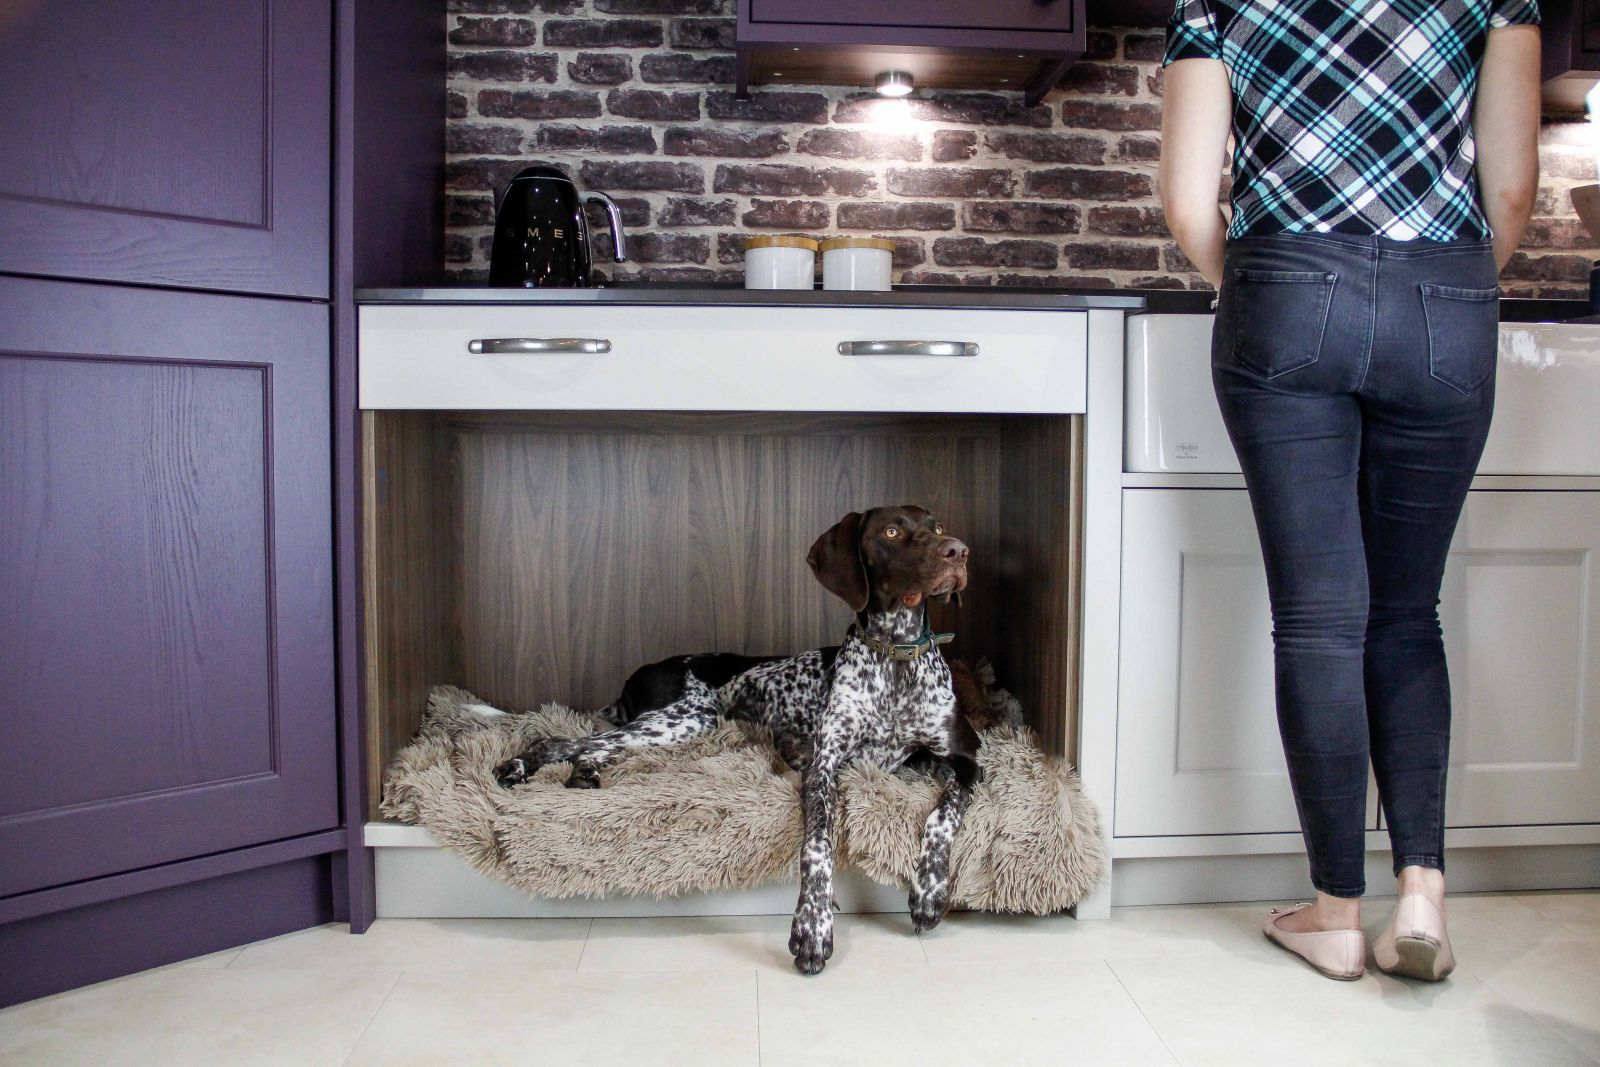 Masterclass Kitchens Dog Bed Area for Pet Friendly Kitchens, cats in kitchens and kitchens for dogs.